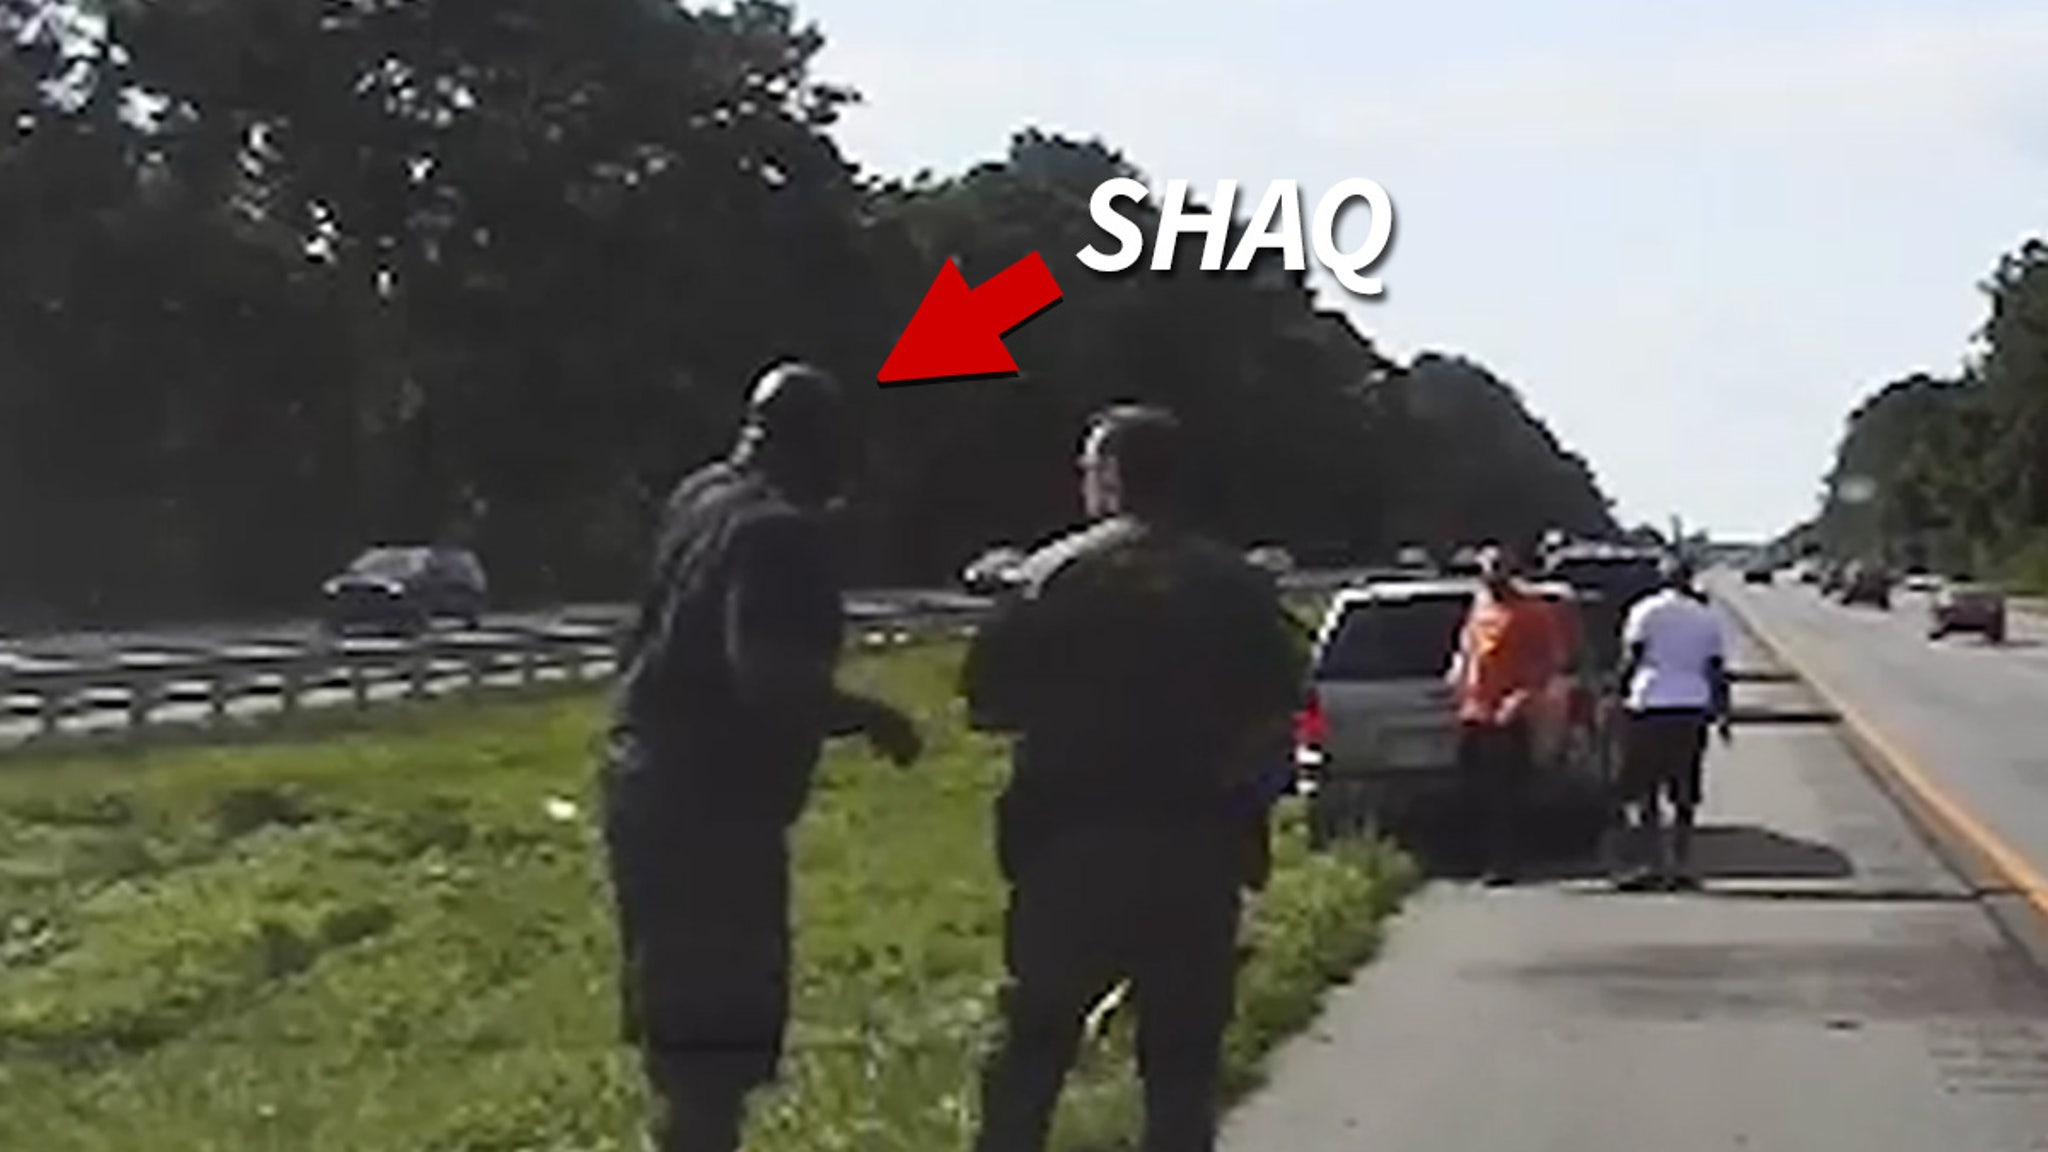 Shaquille O'Neal Good Samaritan Act Caught On Video ... Helped Stranded Driver